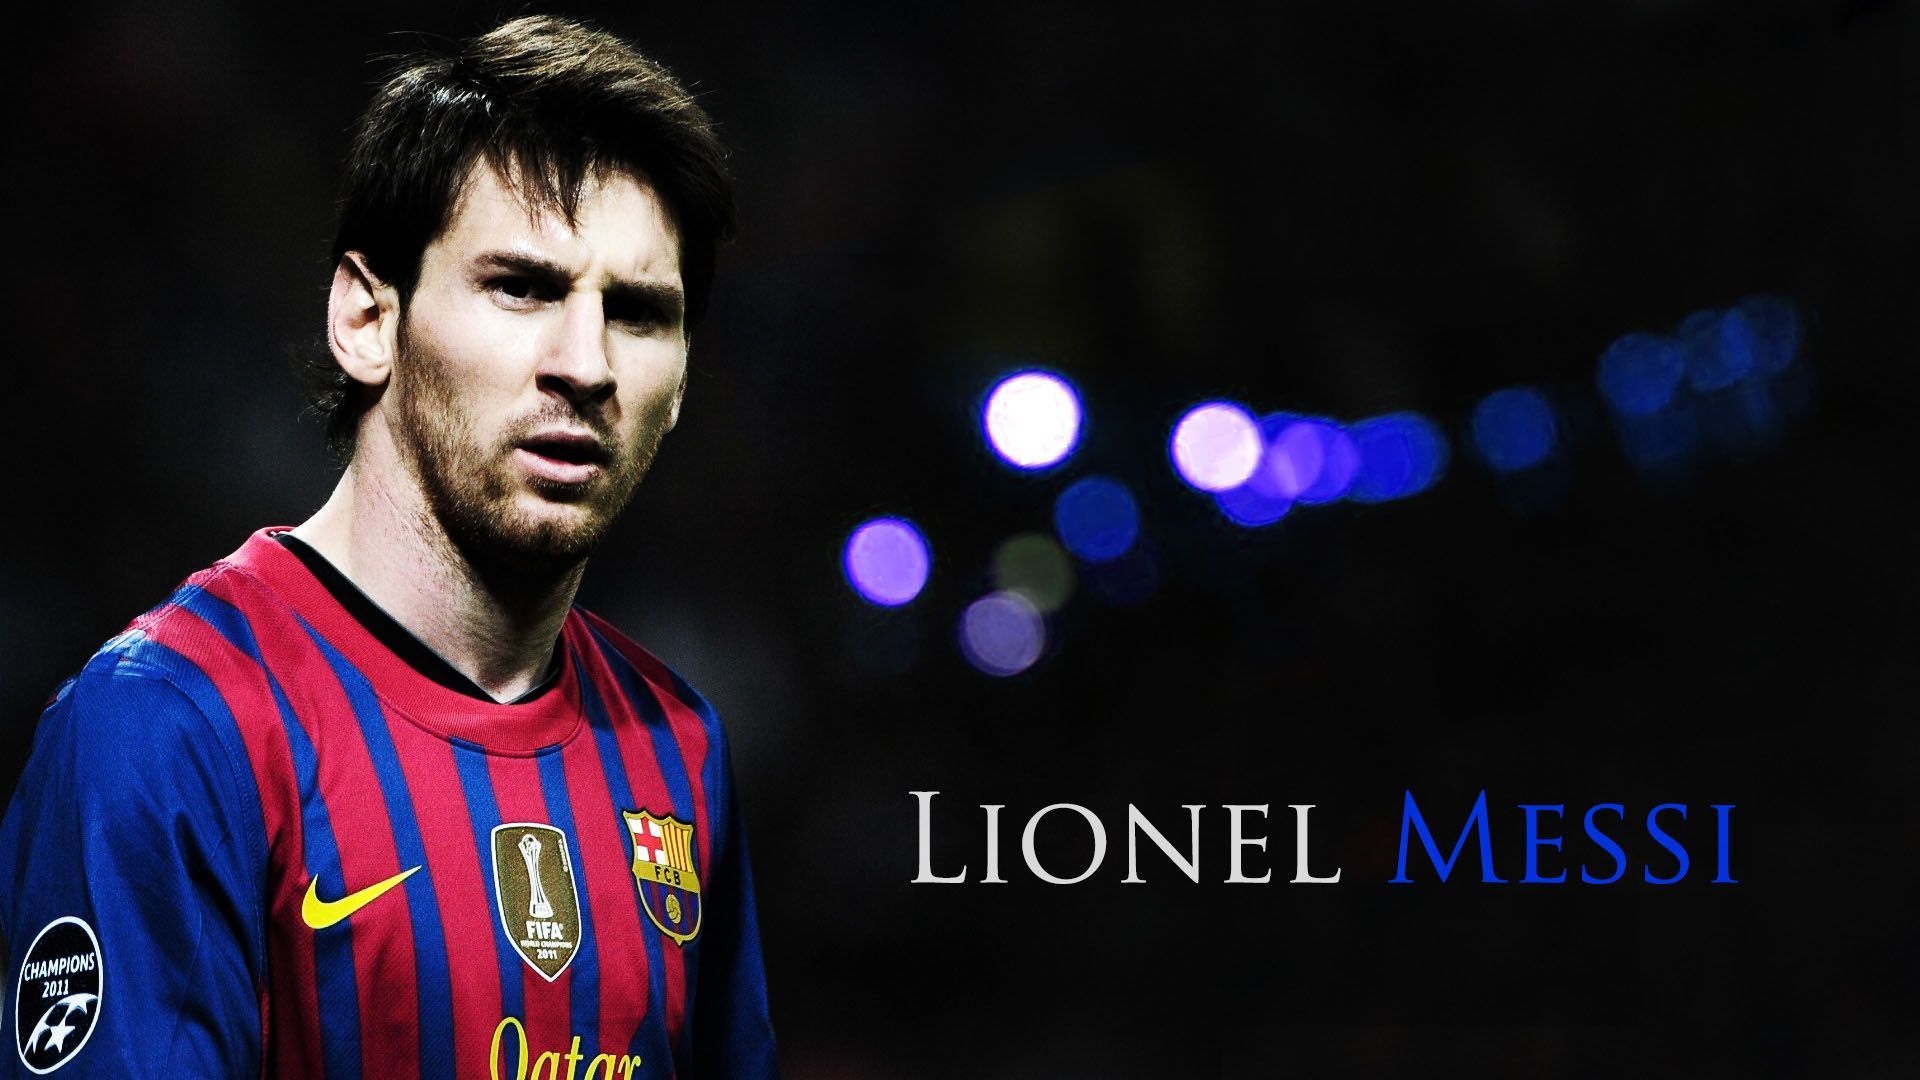 Pin by sohel hossain on messi in 2019 Lionel messi Messi 1920x1080